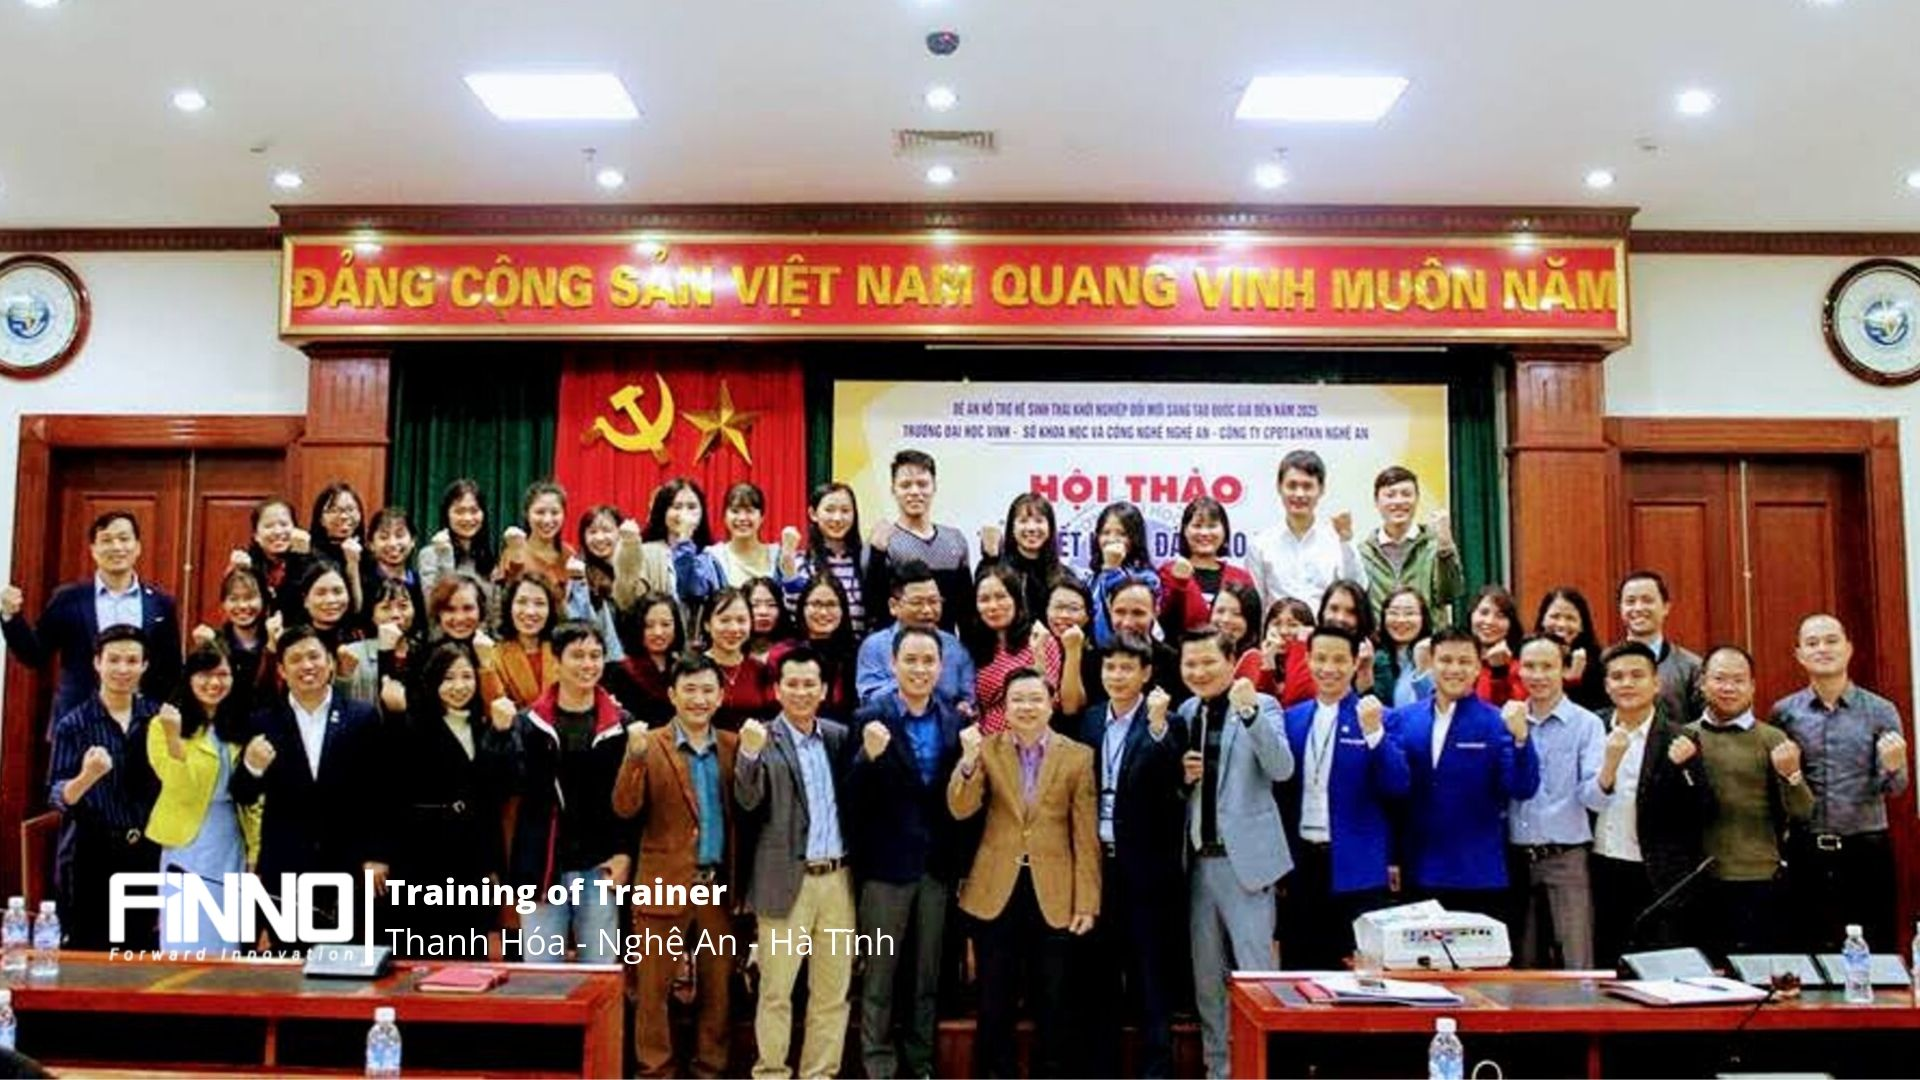 FiNNO-Training-of-Trainer-Thanh-Nghe-Tinh-1